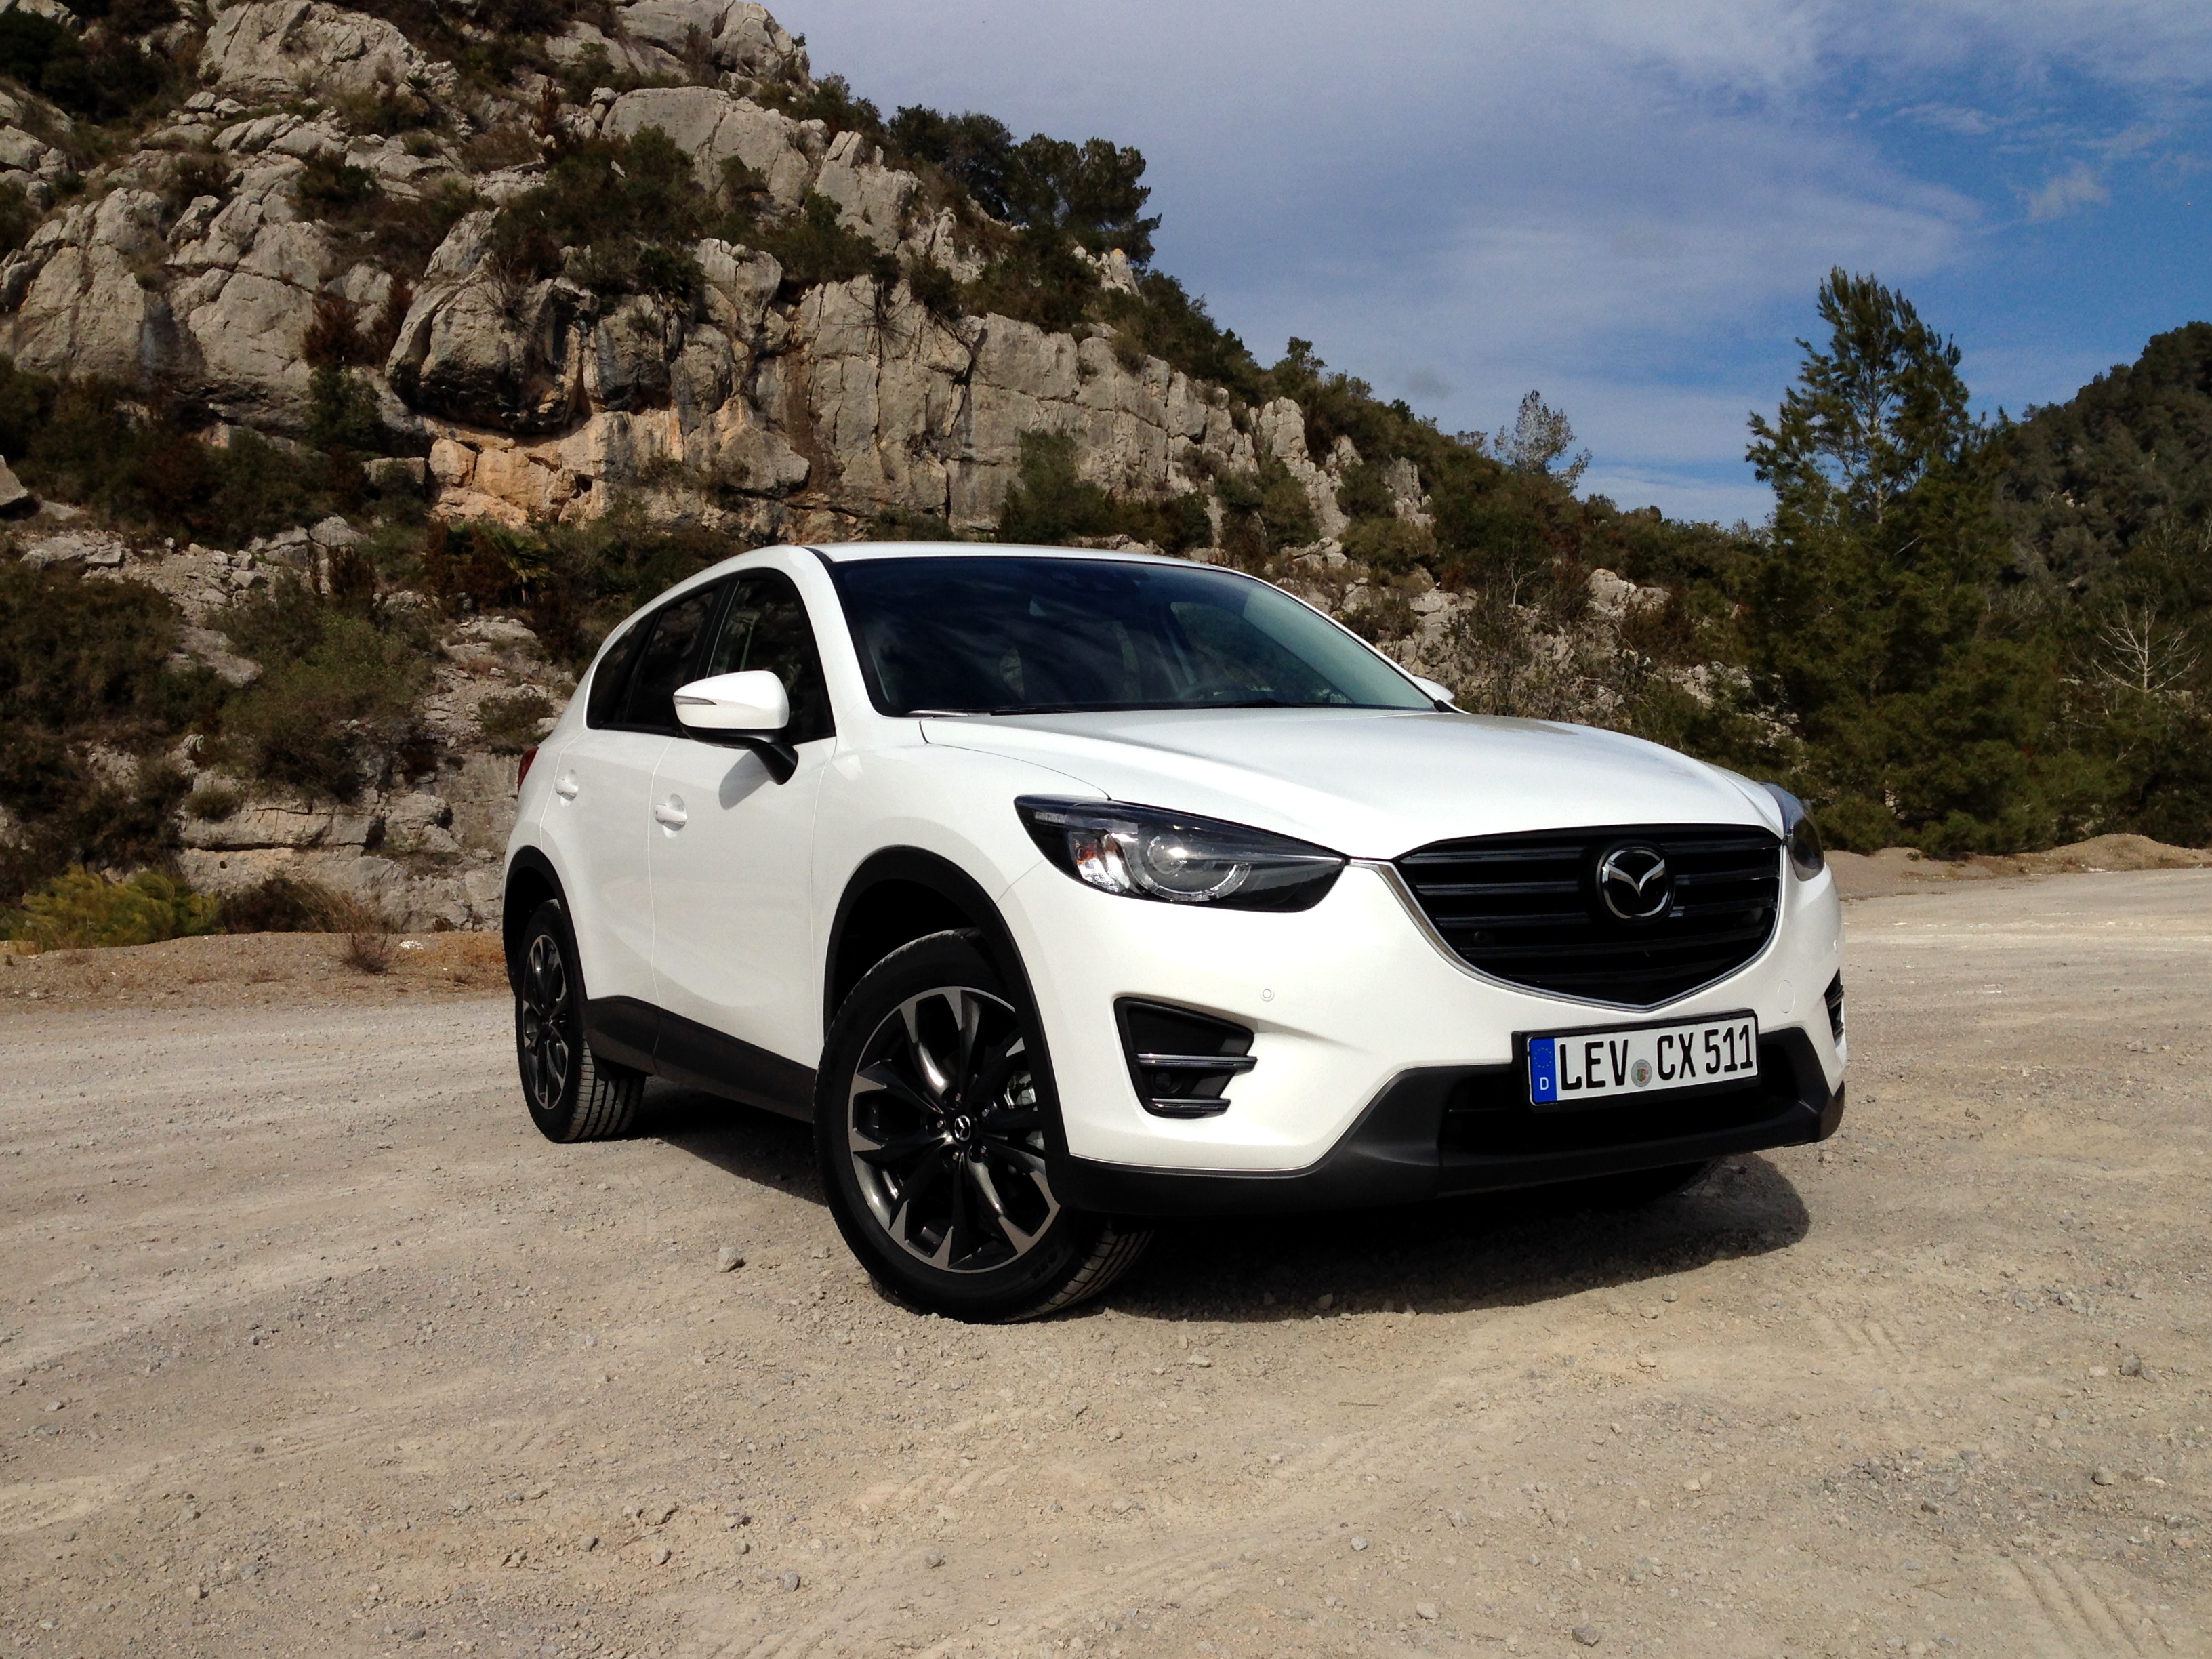 http://throttlechannel.com/wp-content/uploads/2015/03/Mazda-CX-5-2.5-SKIACTIV-G-source-ThrottleChannel.com-25.jpg